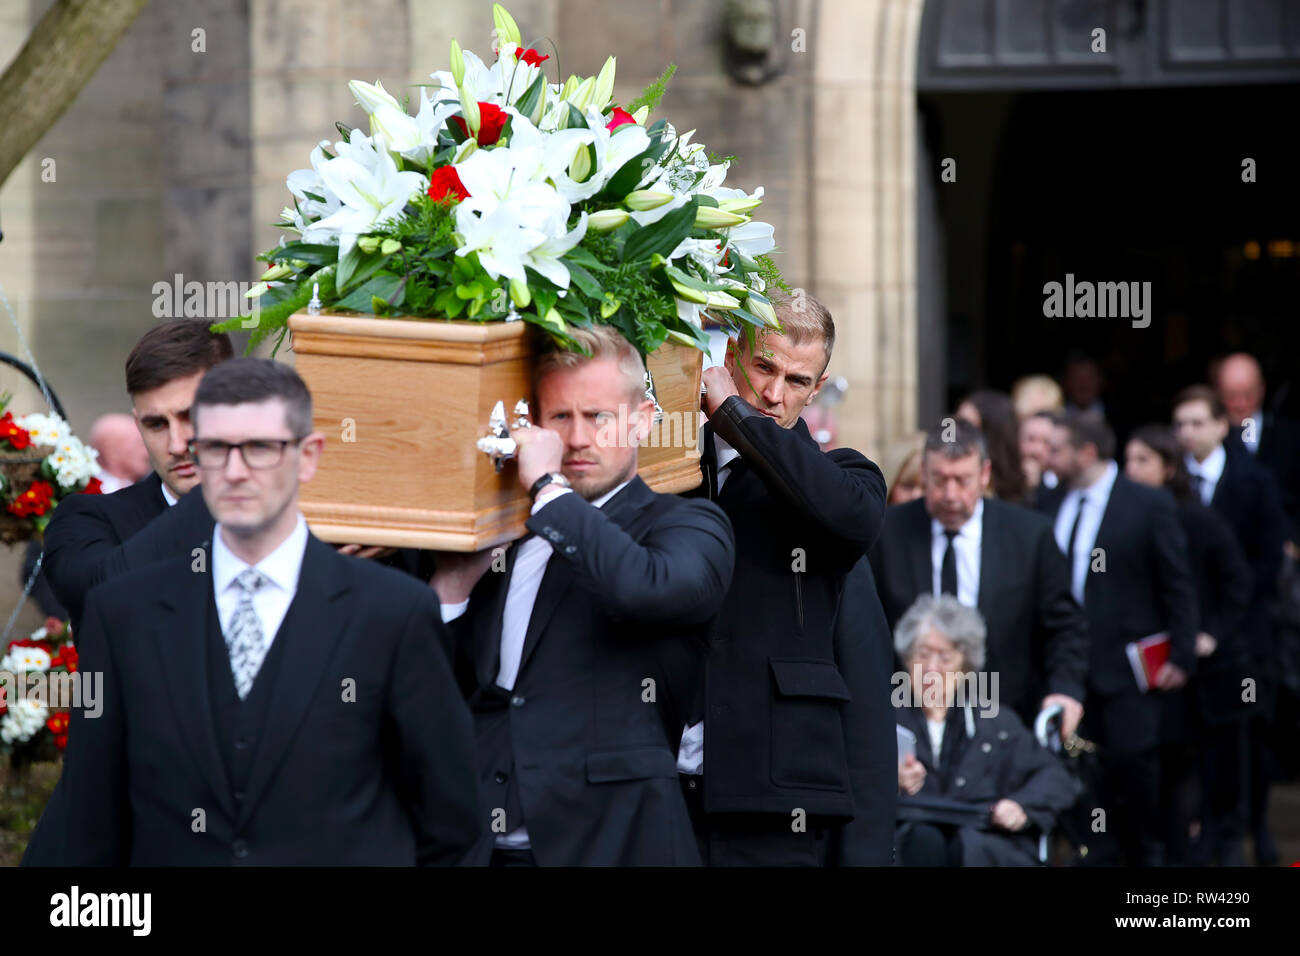 Leicester City goalkeeper Kasper Schmeichel (left) and Burnley goalkeeper Joe Hart carry the coffin during the funeral service for Gordon Banks at Stoke Minster. - Stock Image